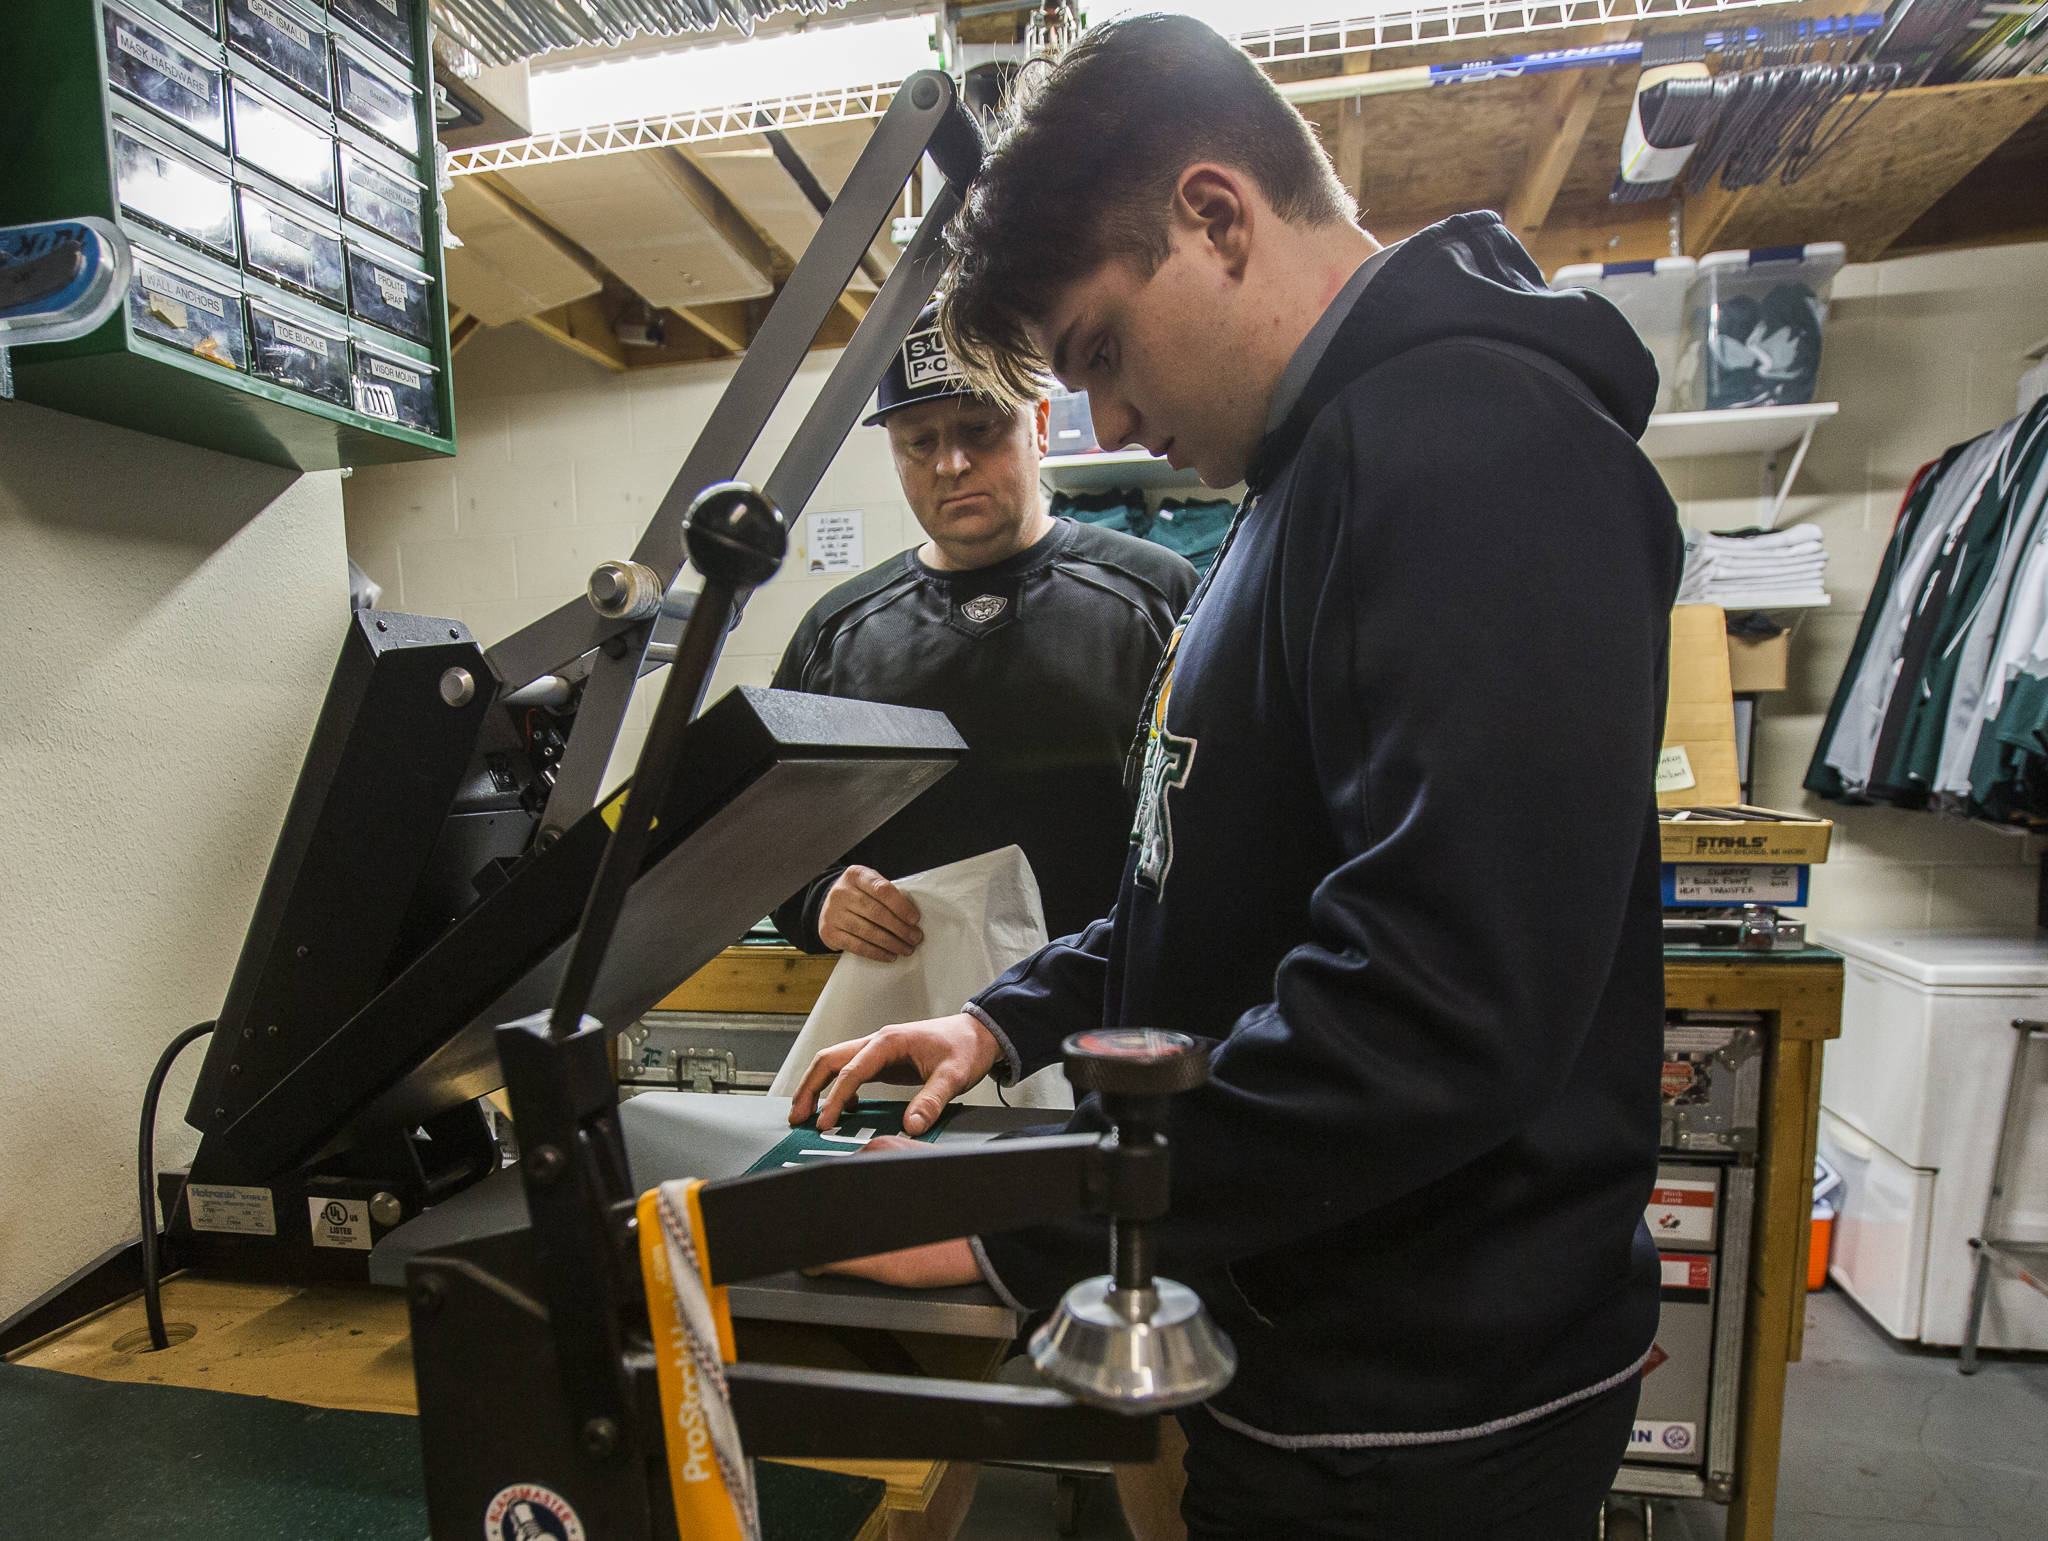 Everett Silvertips equipment manager James Stucky (rear) and his son, C.J. Stucky work on the nameplate for a new member of the team on Jan. 7 at Angel of the Winds Arena in Everett. C.J. Stucky plays for the Jr. Silvertips 18U team. (Olivia Vanni / The Herald).